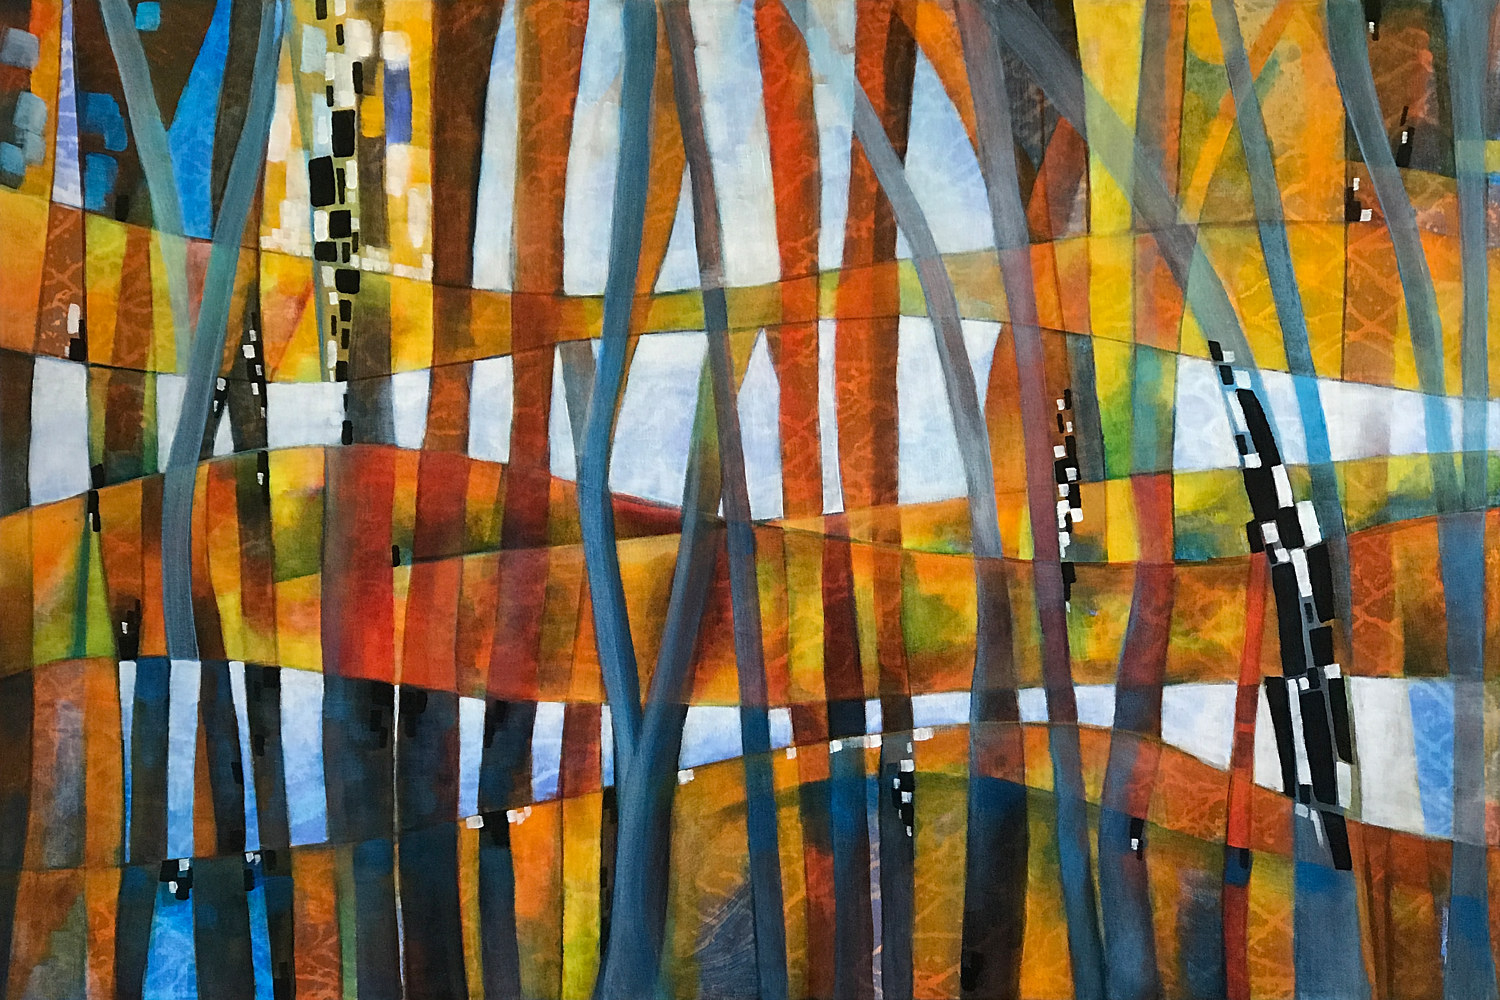 Acrylic painting Untangling by Karen Holland